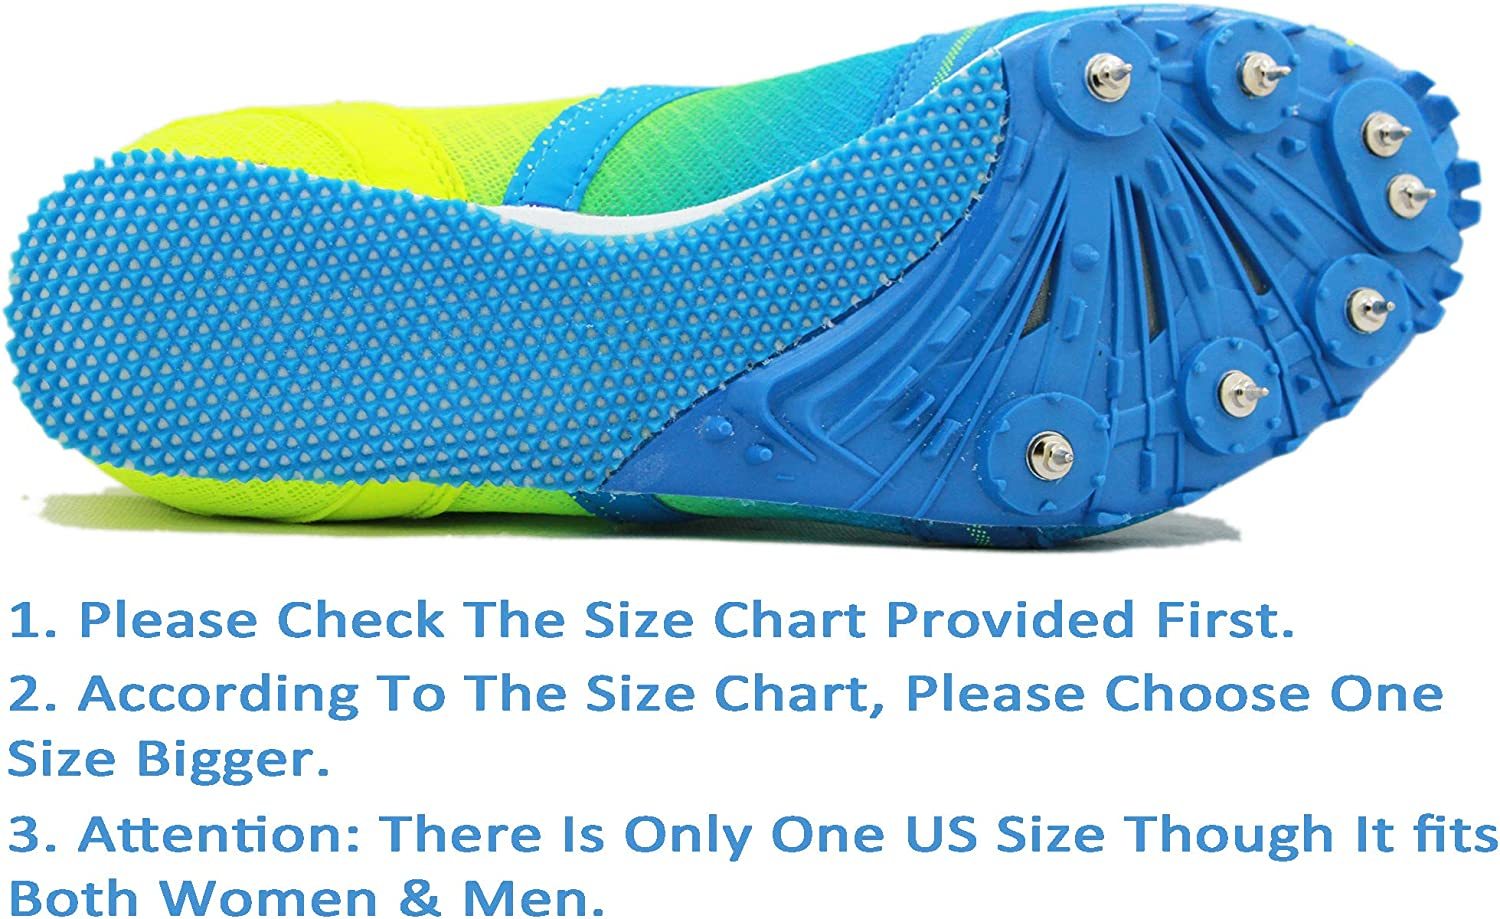 Mens Boys Girls,Womens HEALTH Track Spike Running Sprint Shoes Track and Field Shoes Mesh Breathable Lightweight Professional Athletic Shoes 5599 Blue /& Red for Kids